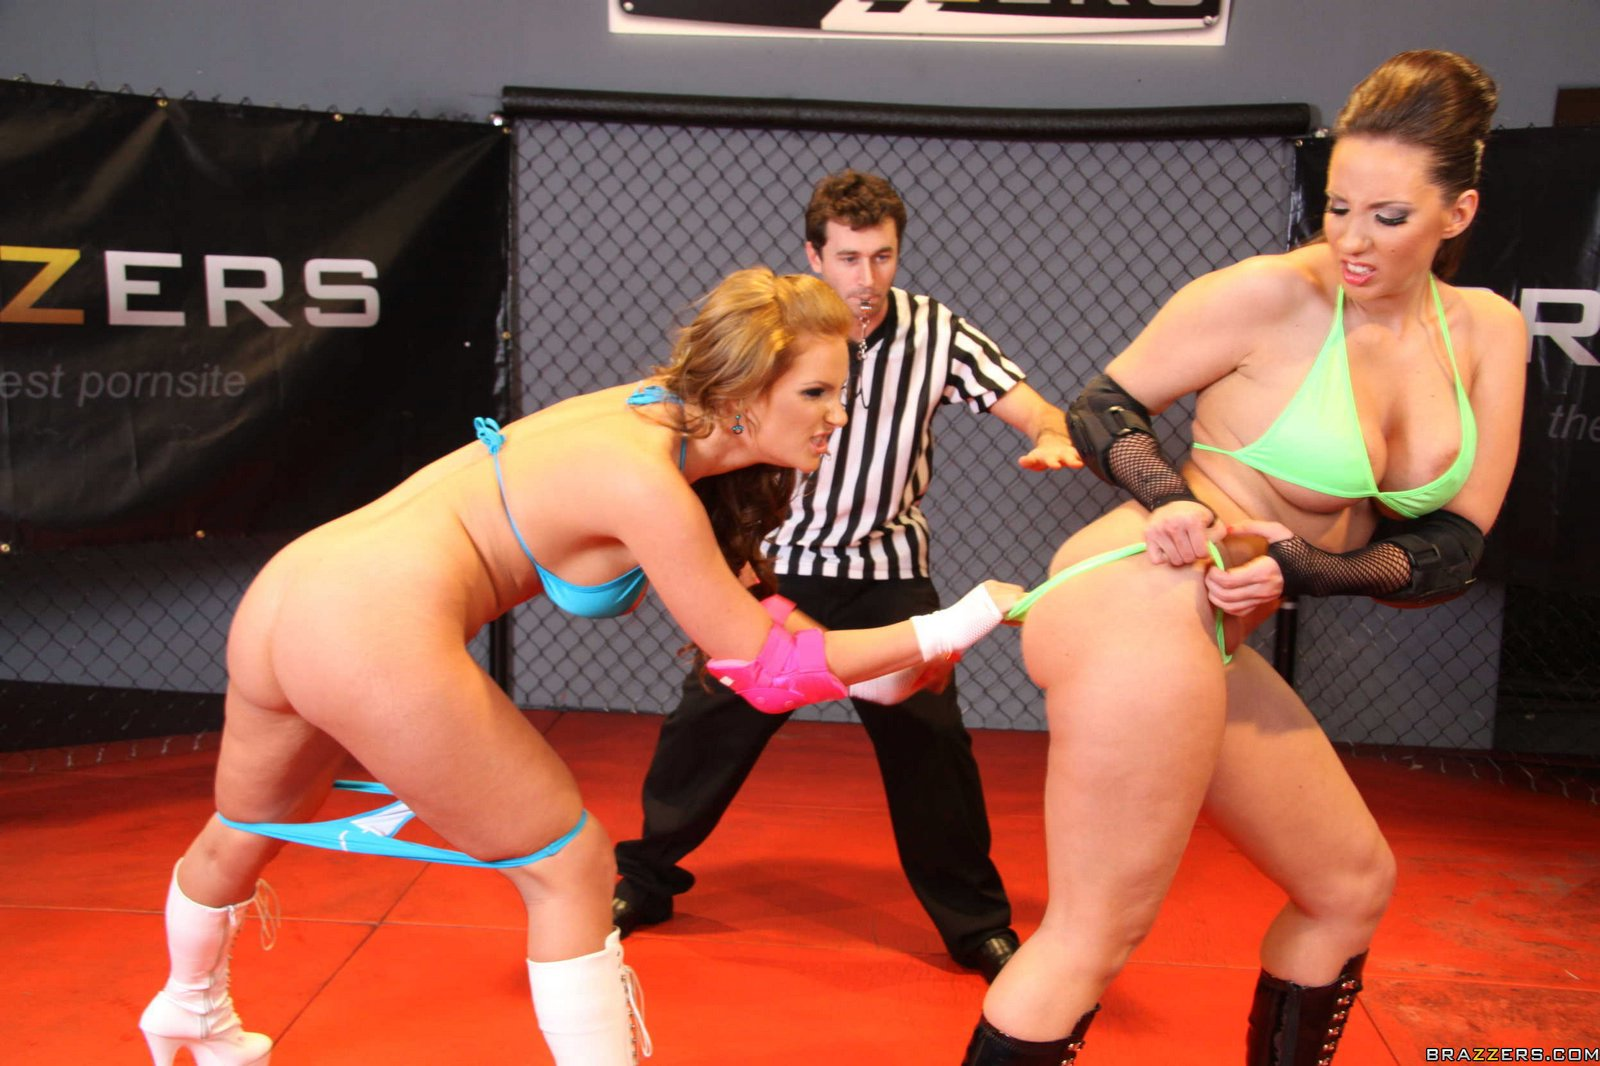 Kelly divine wrestling